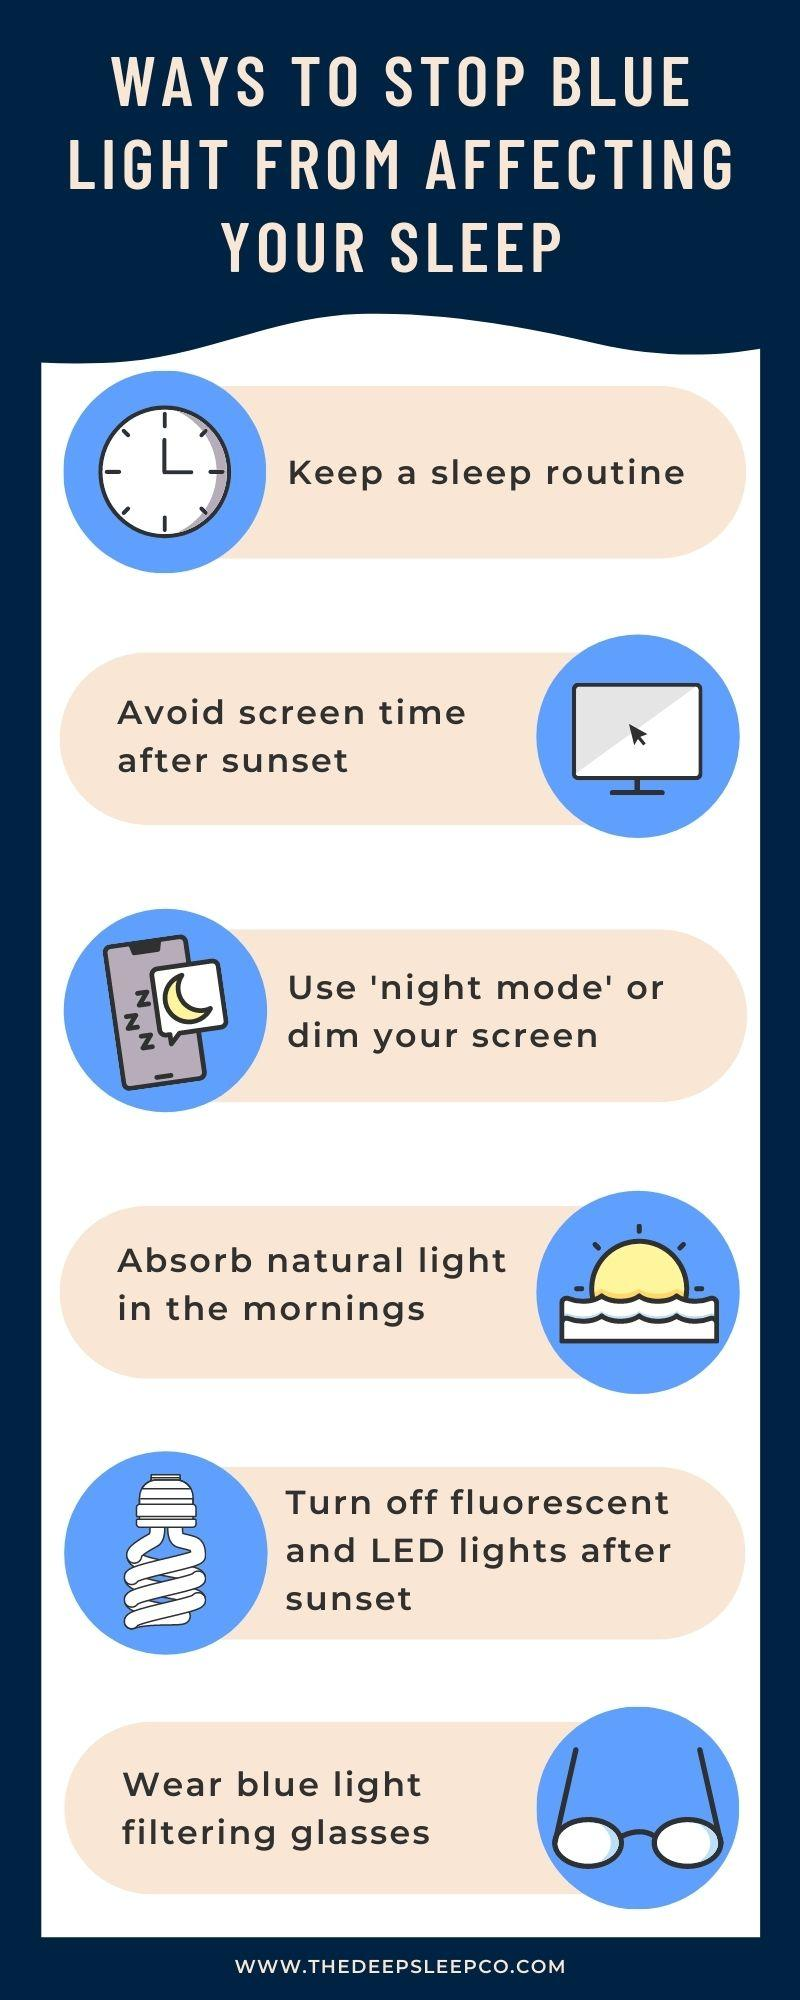 Ways to stop blue light from affecting your sleep